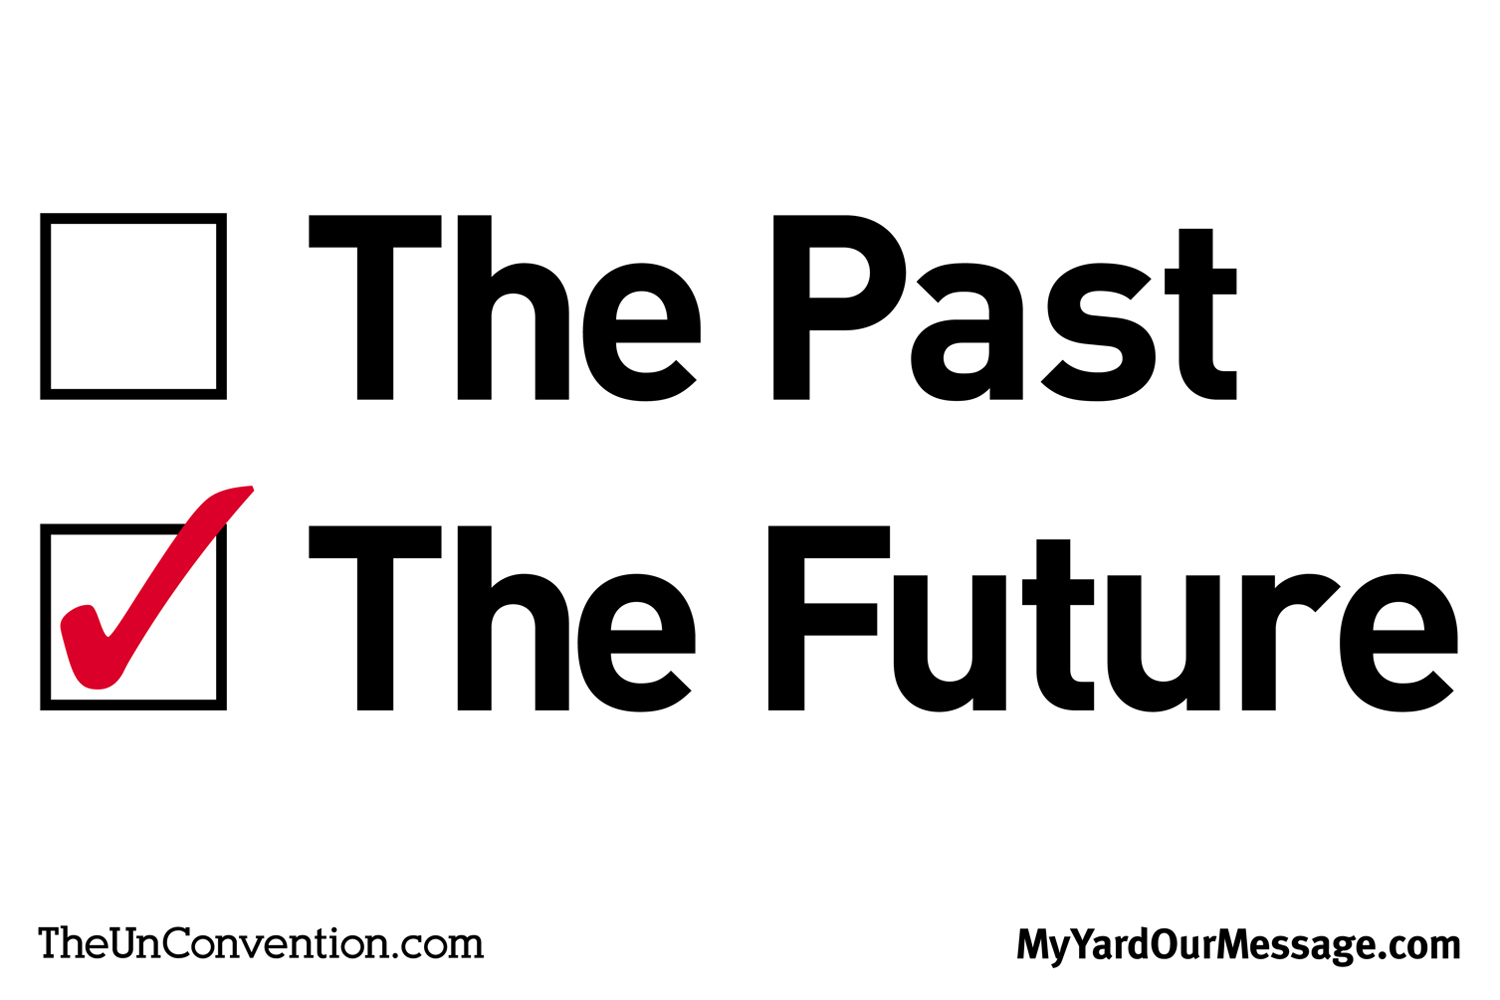 The Past vs. The Future